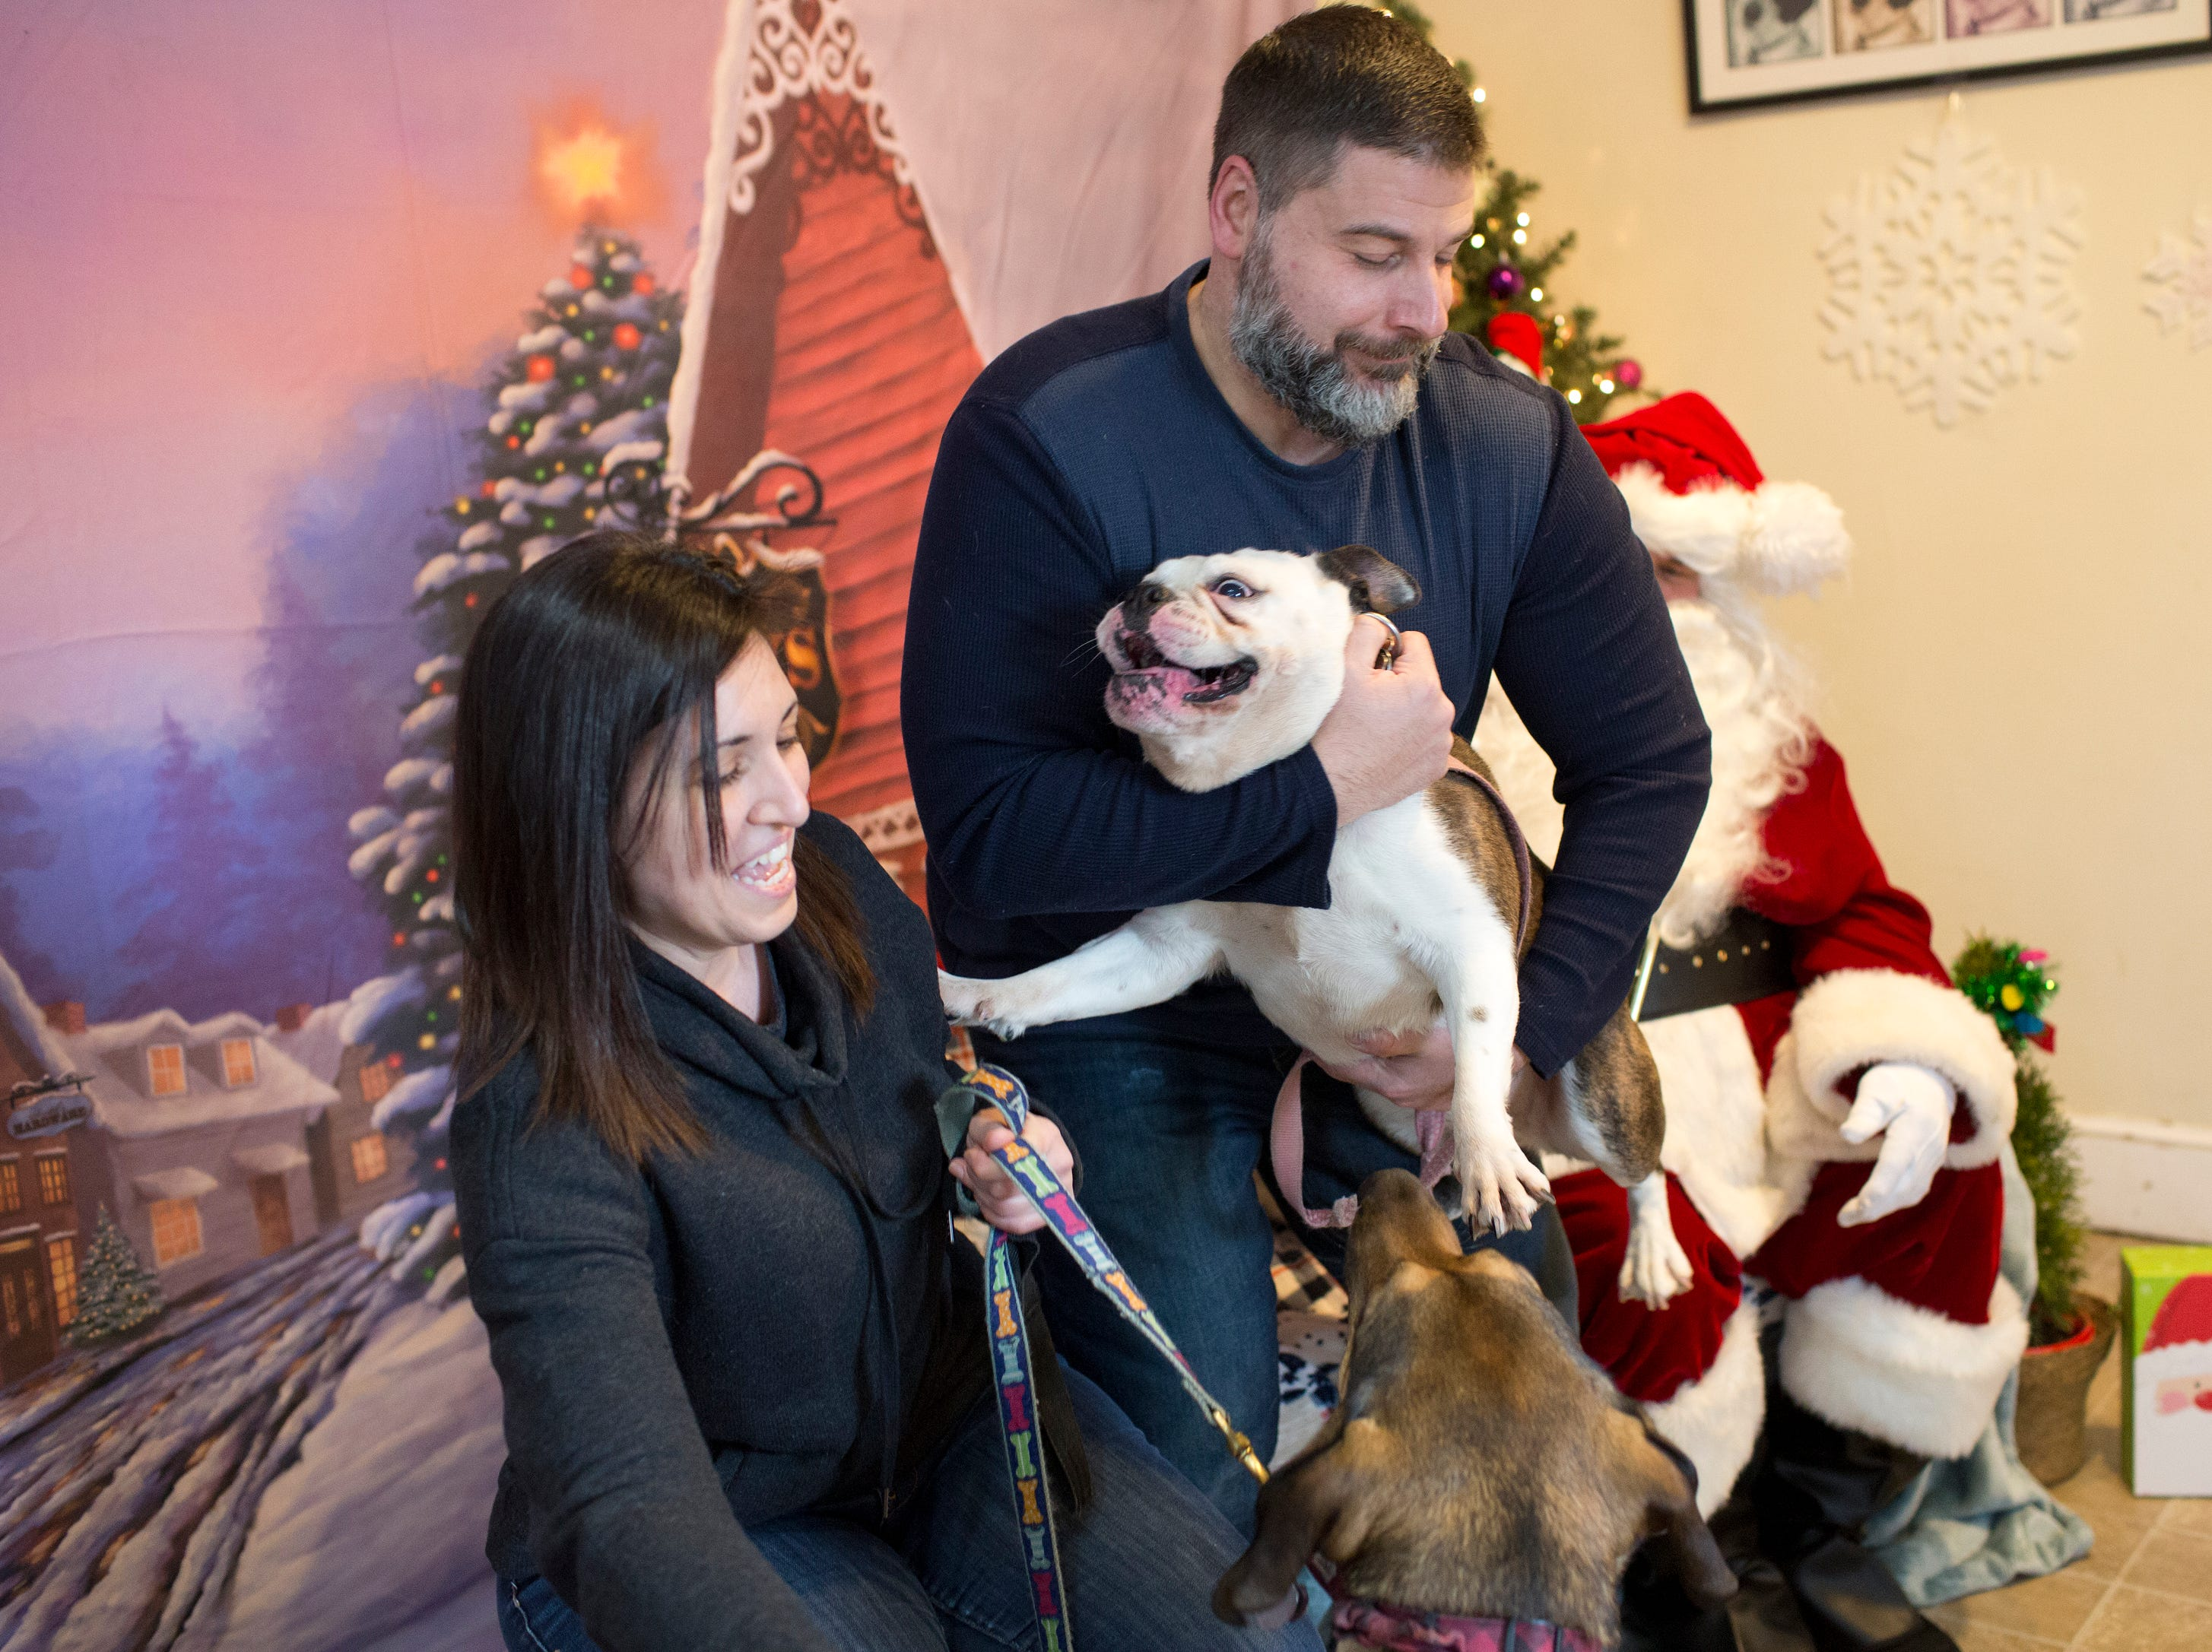 Al and Michelle Grambone of Wayne try to pose their dogs Harley (Bull dog) and Grayson, a German Shepherd, during the Santa Paws photo session for pets at the Rampo-Bergen Animal Refuge Inc. in Oakland on Saturday, Dec. 1, 2018. Sponsored by Allstate, all proceeds from the photo sessions go directly towards the care of animals rescued by RBARI.